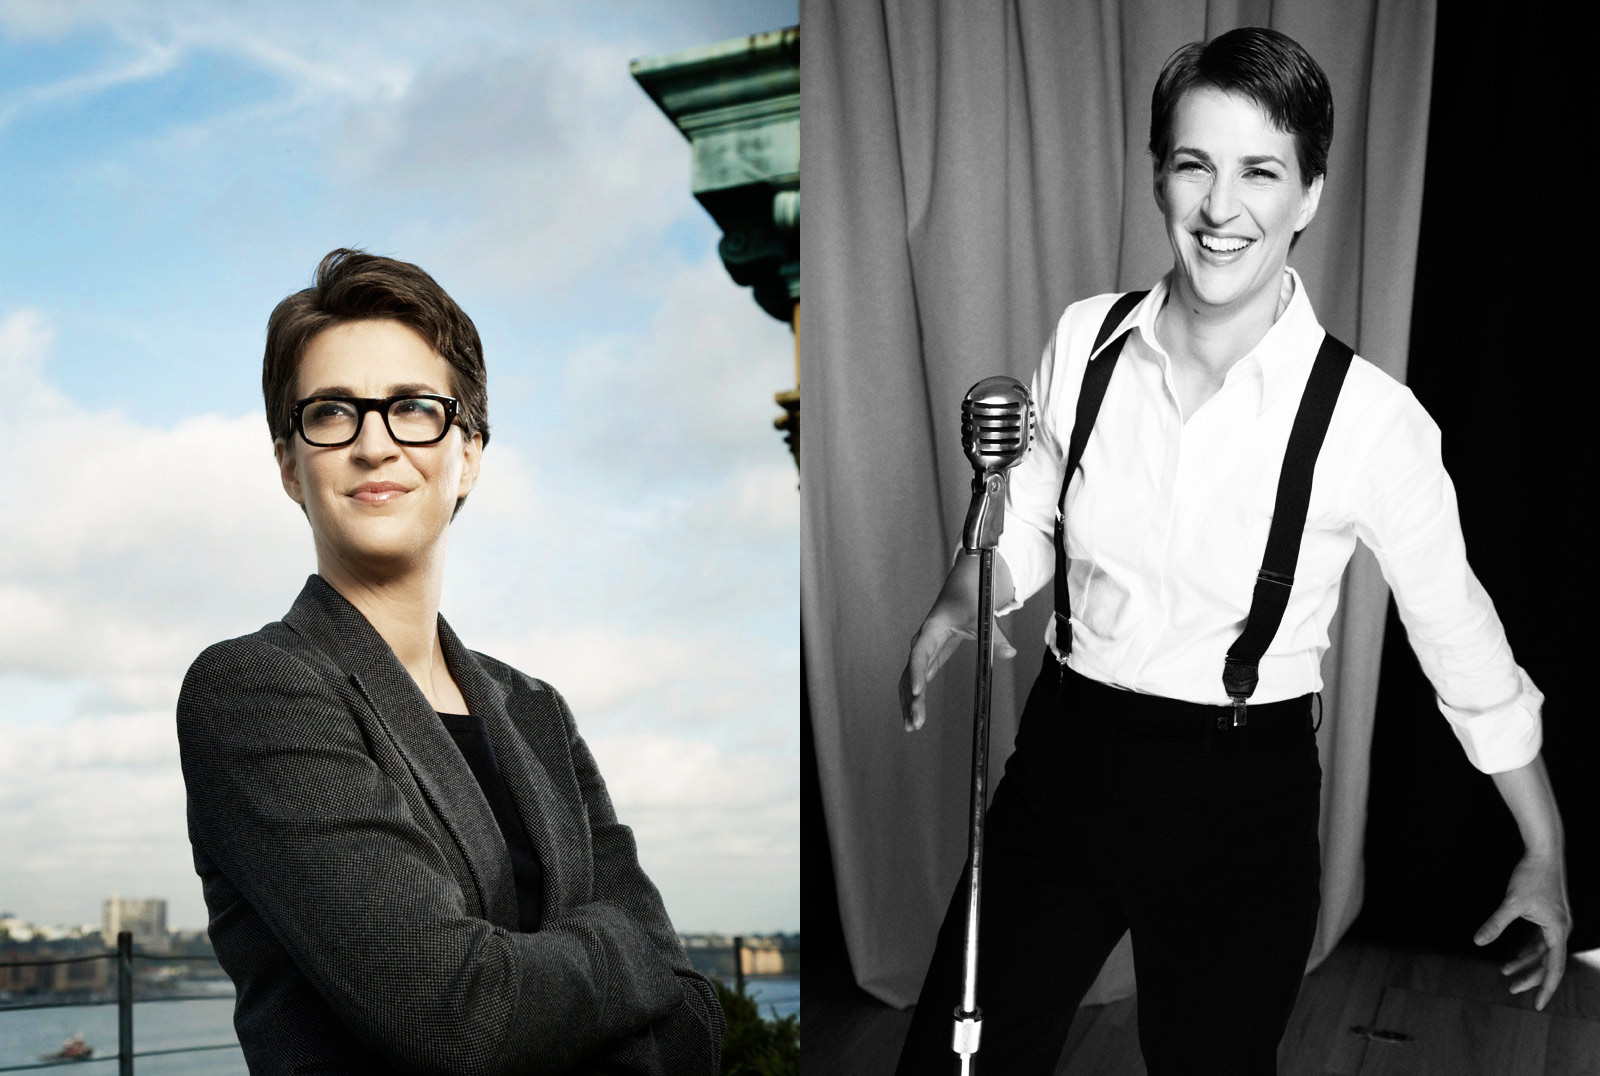 Rachel Maddow by Matt Furman - www.furmanfoto.com